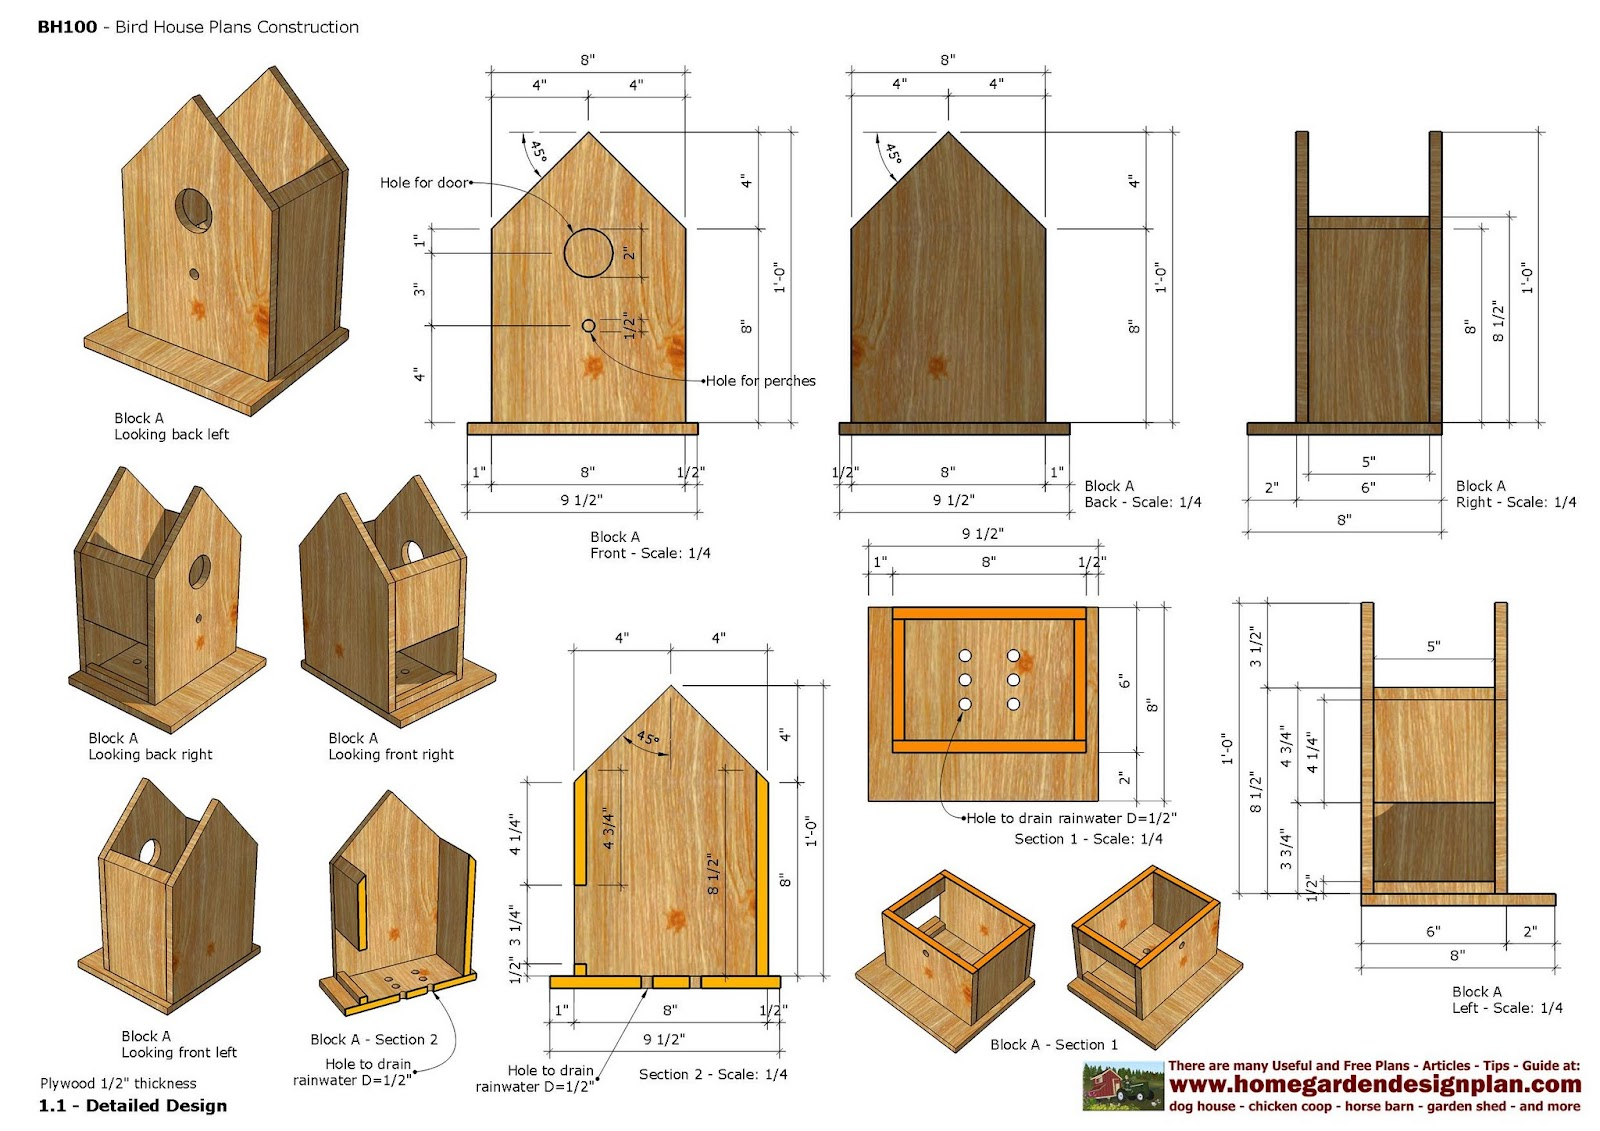 Bh Bird House Plans Construction Bird on playhouse designs and plans